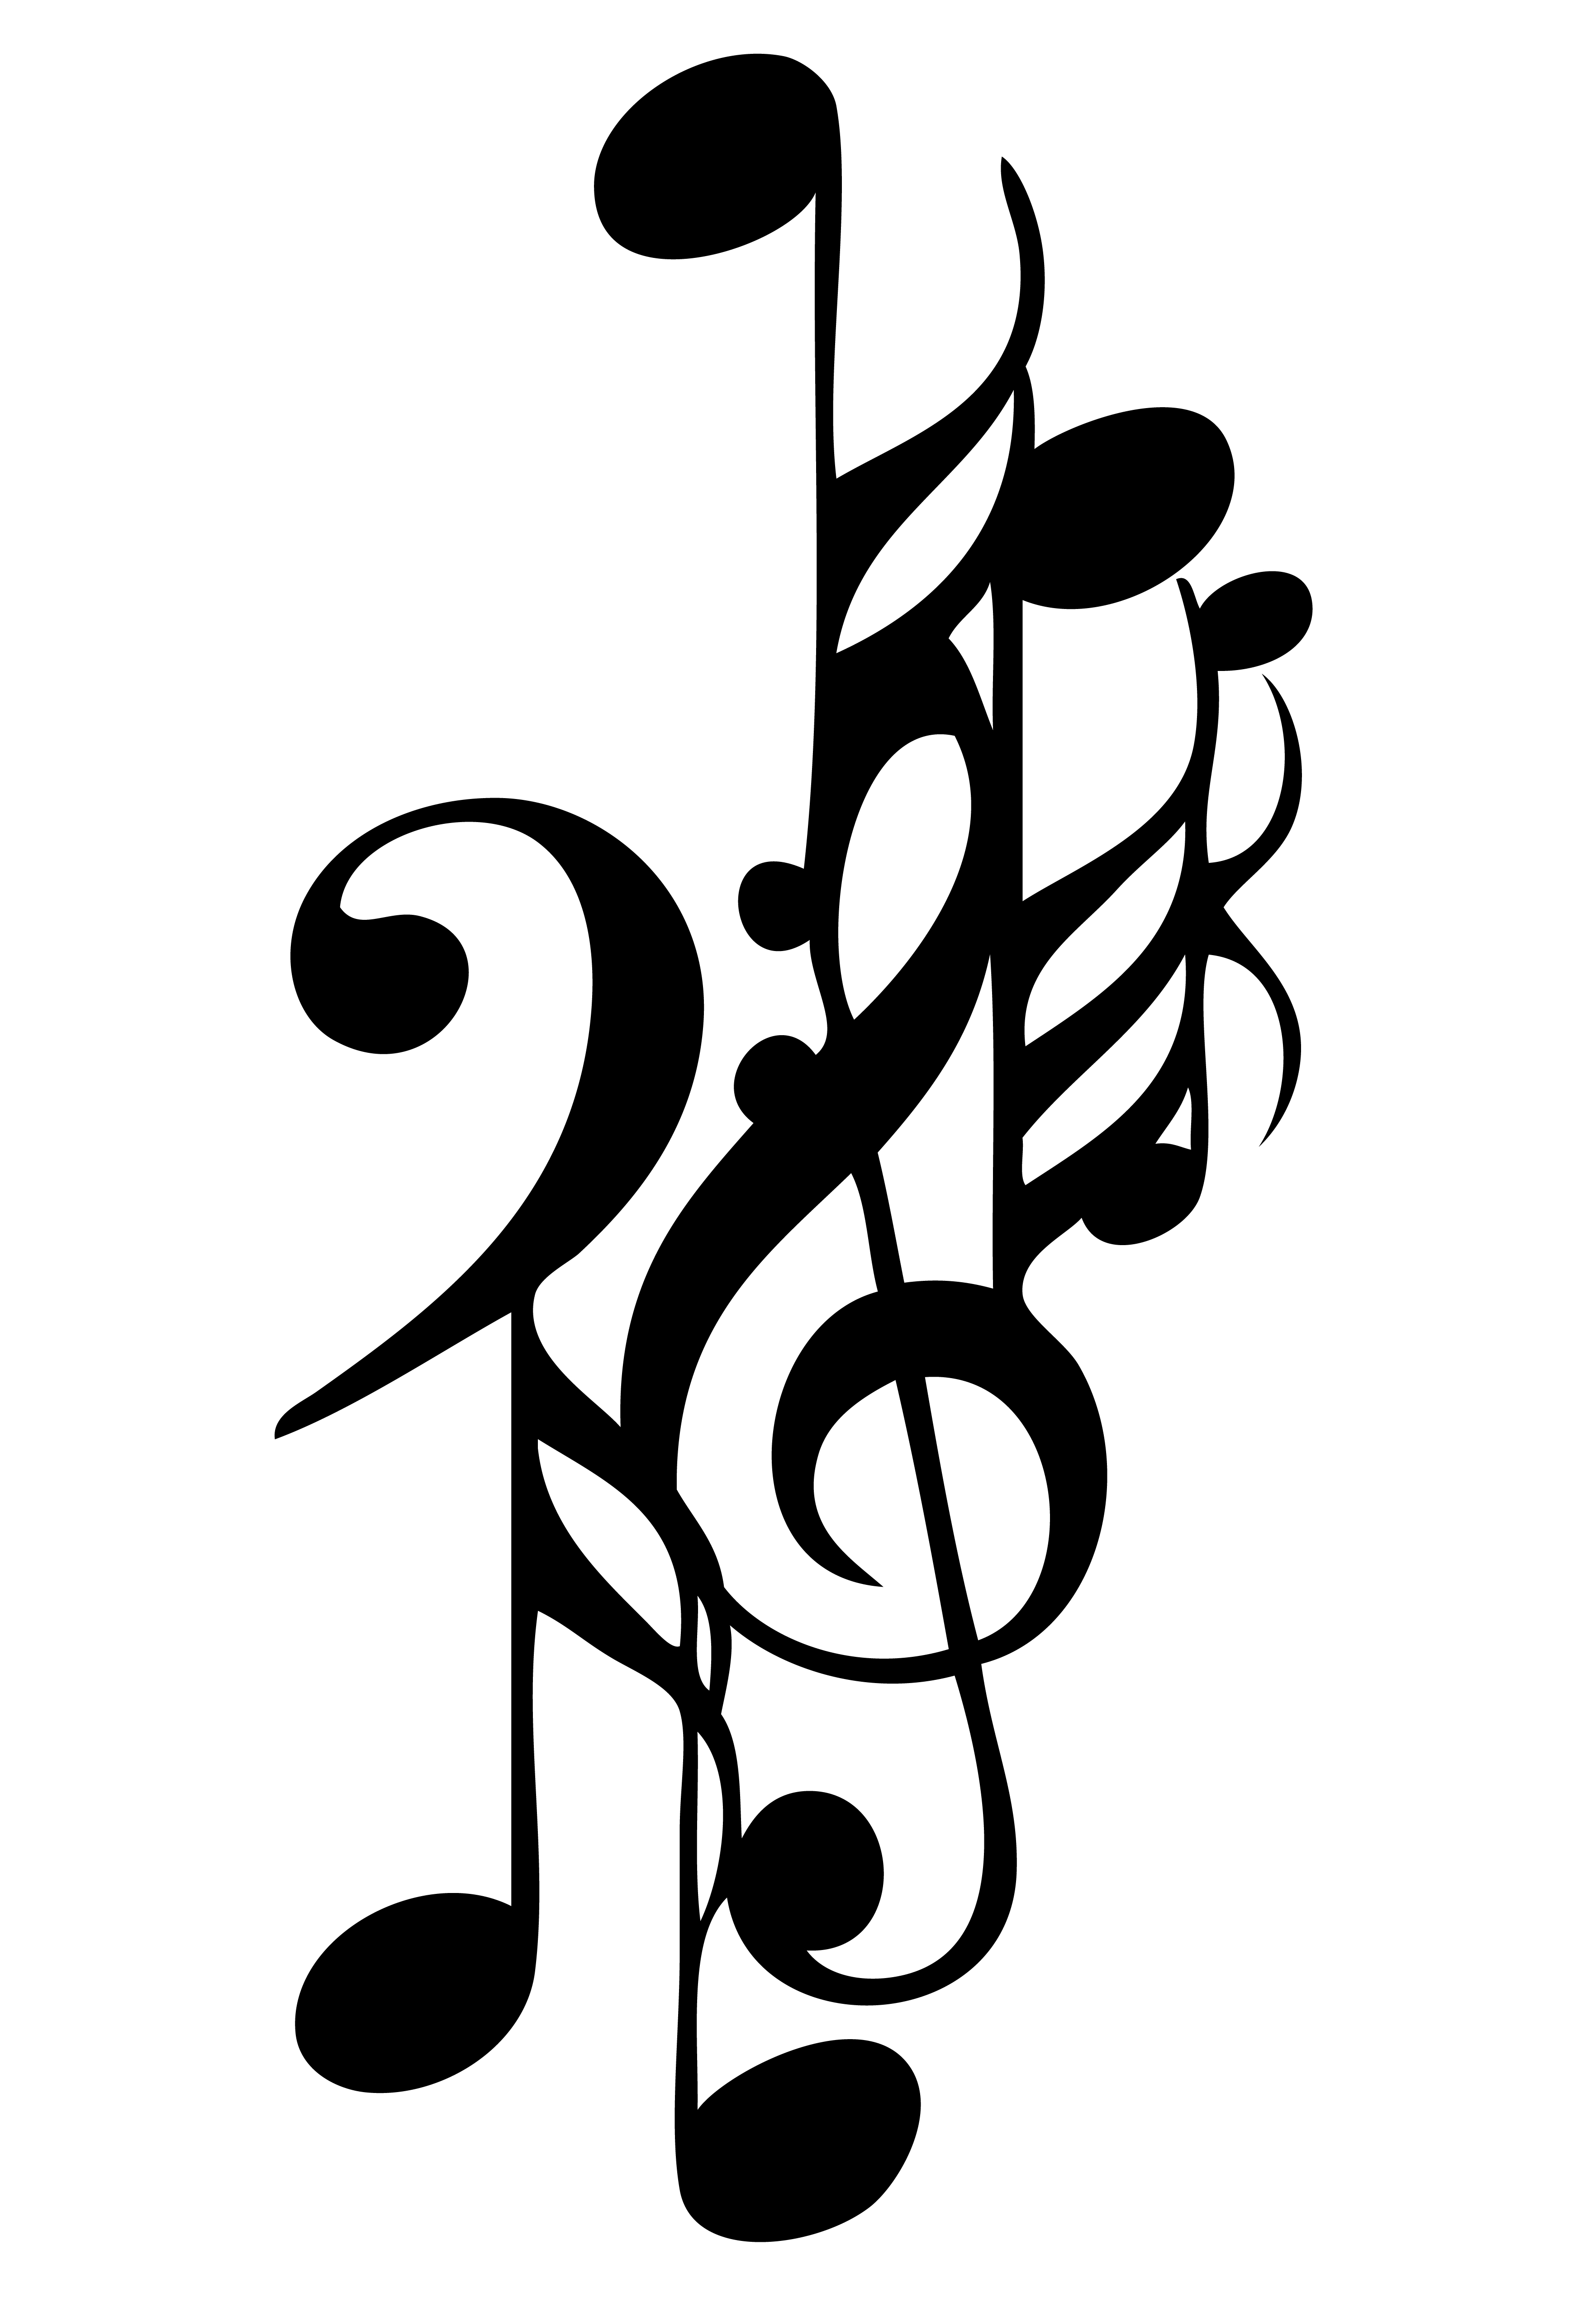 Cool Music Notes Drawings - ClipArt Best